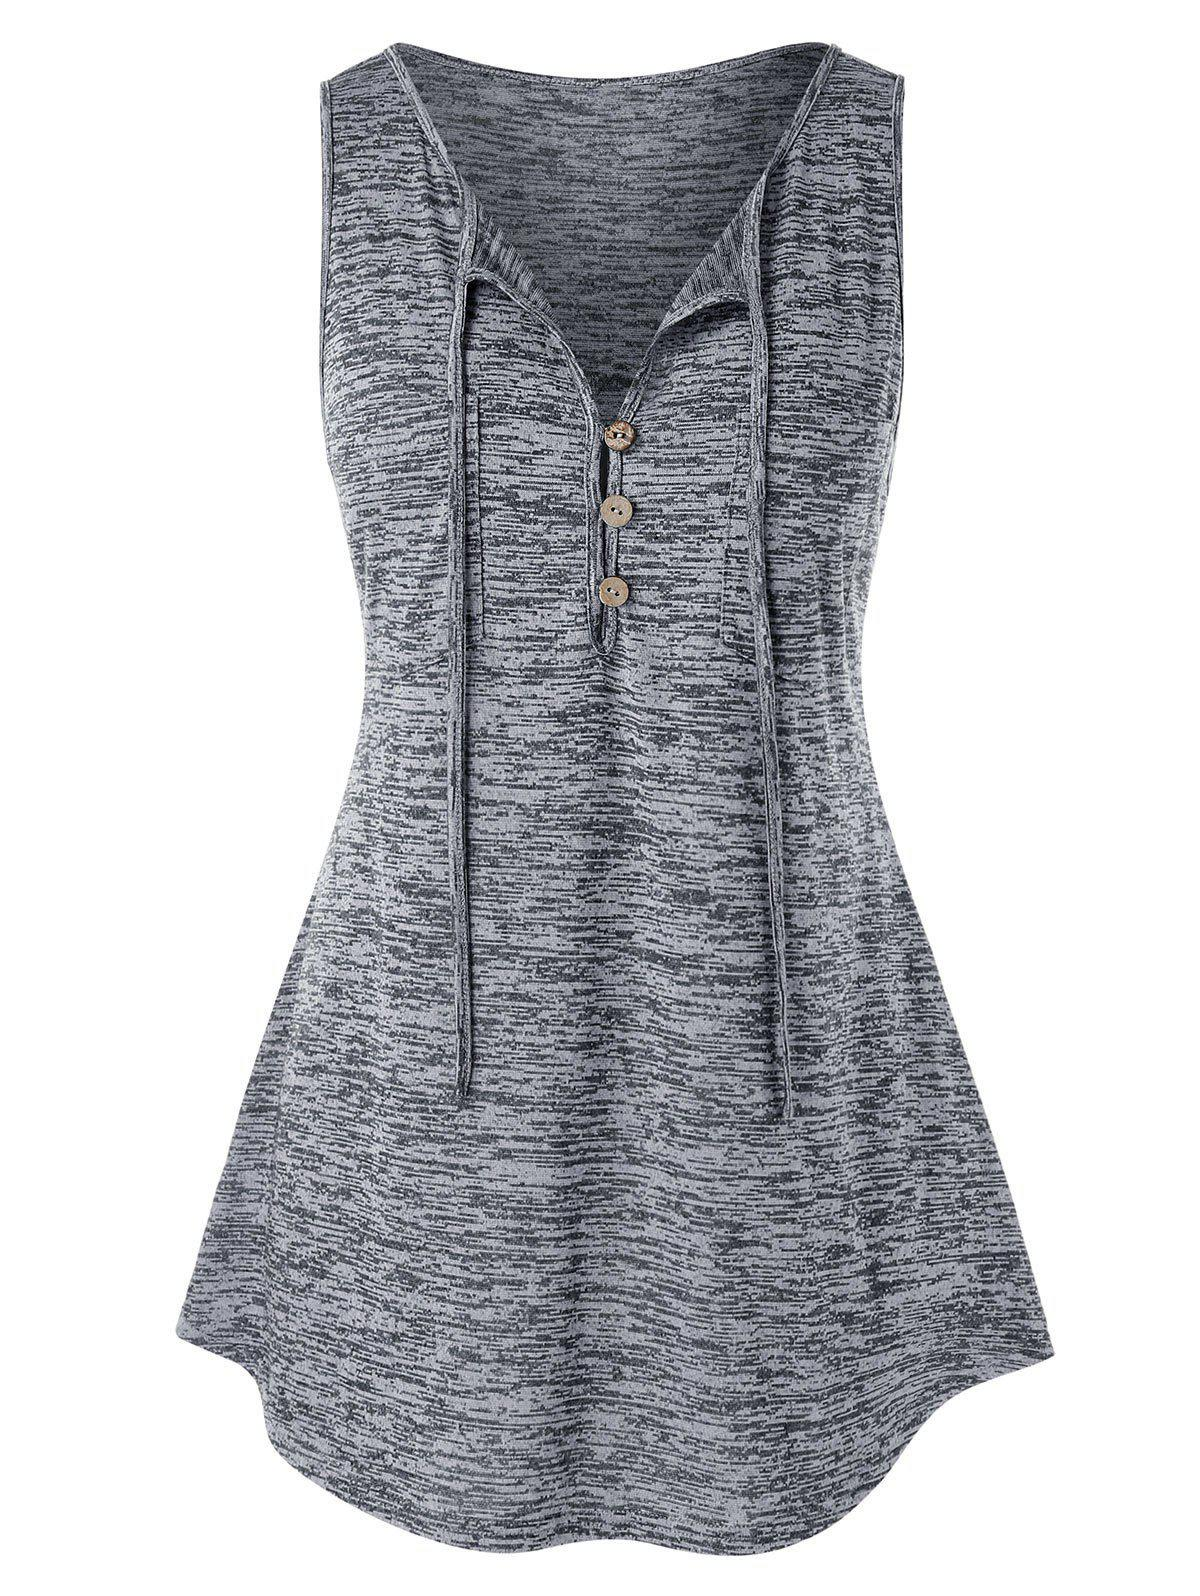 Plus Size Button Embellished Marled Tank Top - GRAY GOOSE 5X